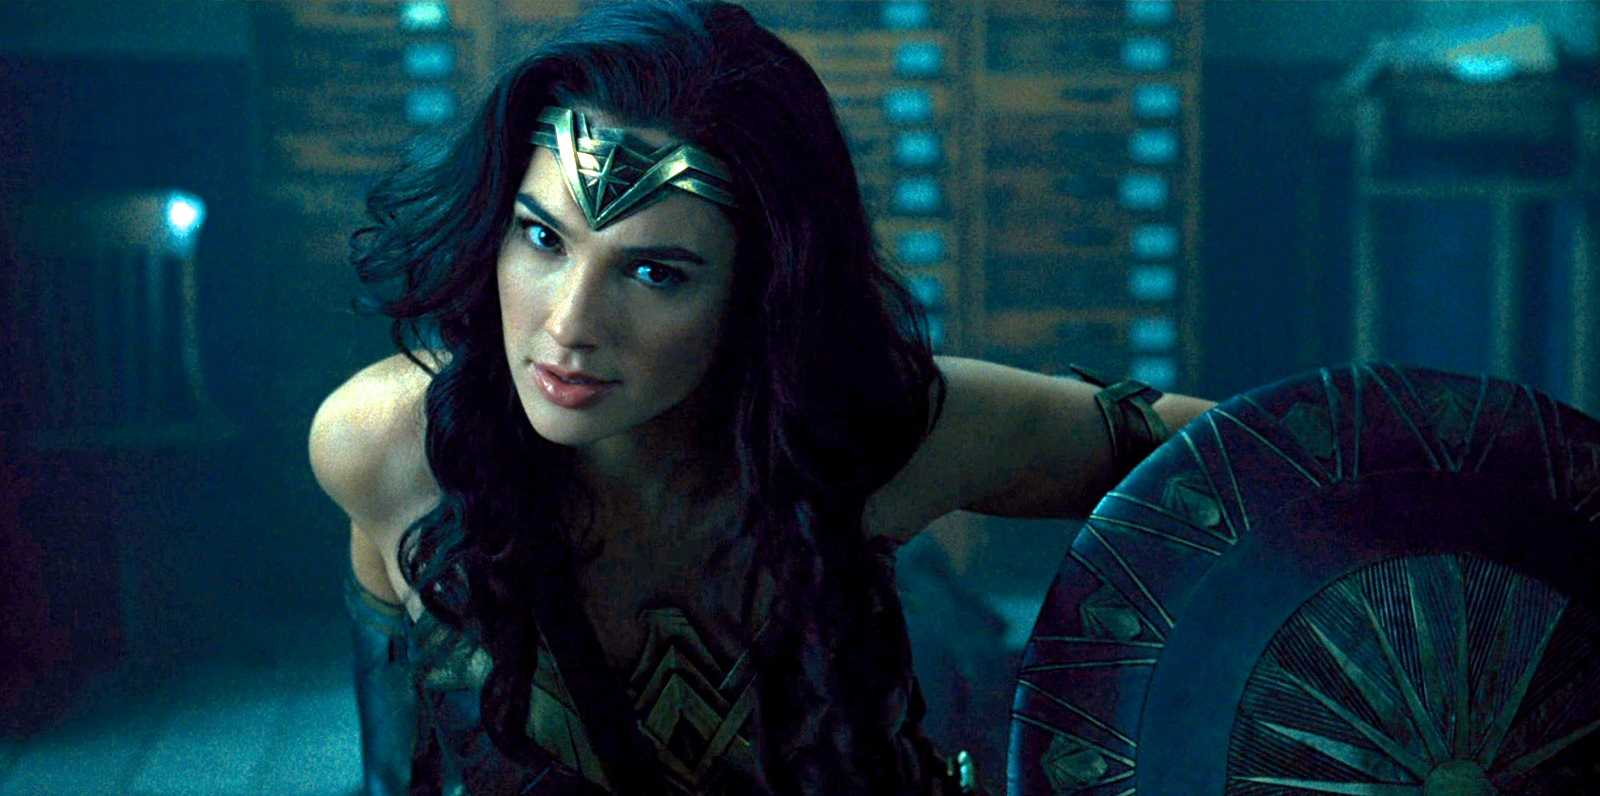 Writer's Group Is Funding Girls To See 'Wonder Woman' | Wonder Woman